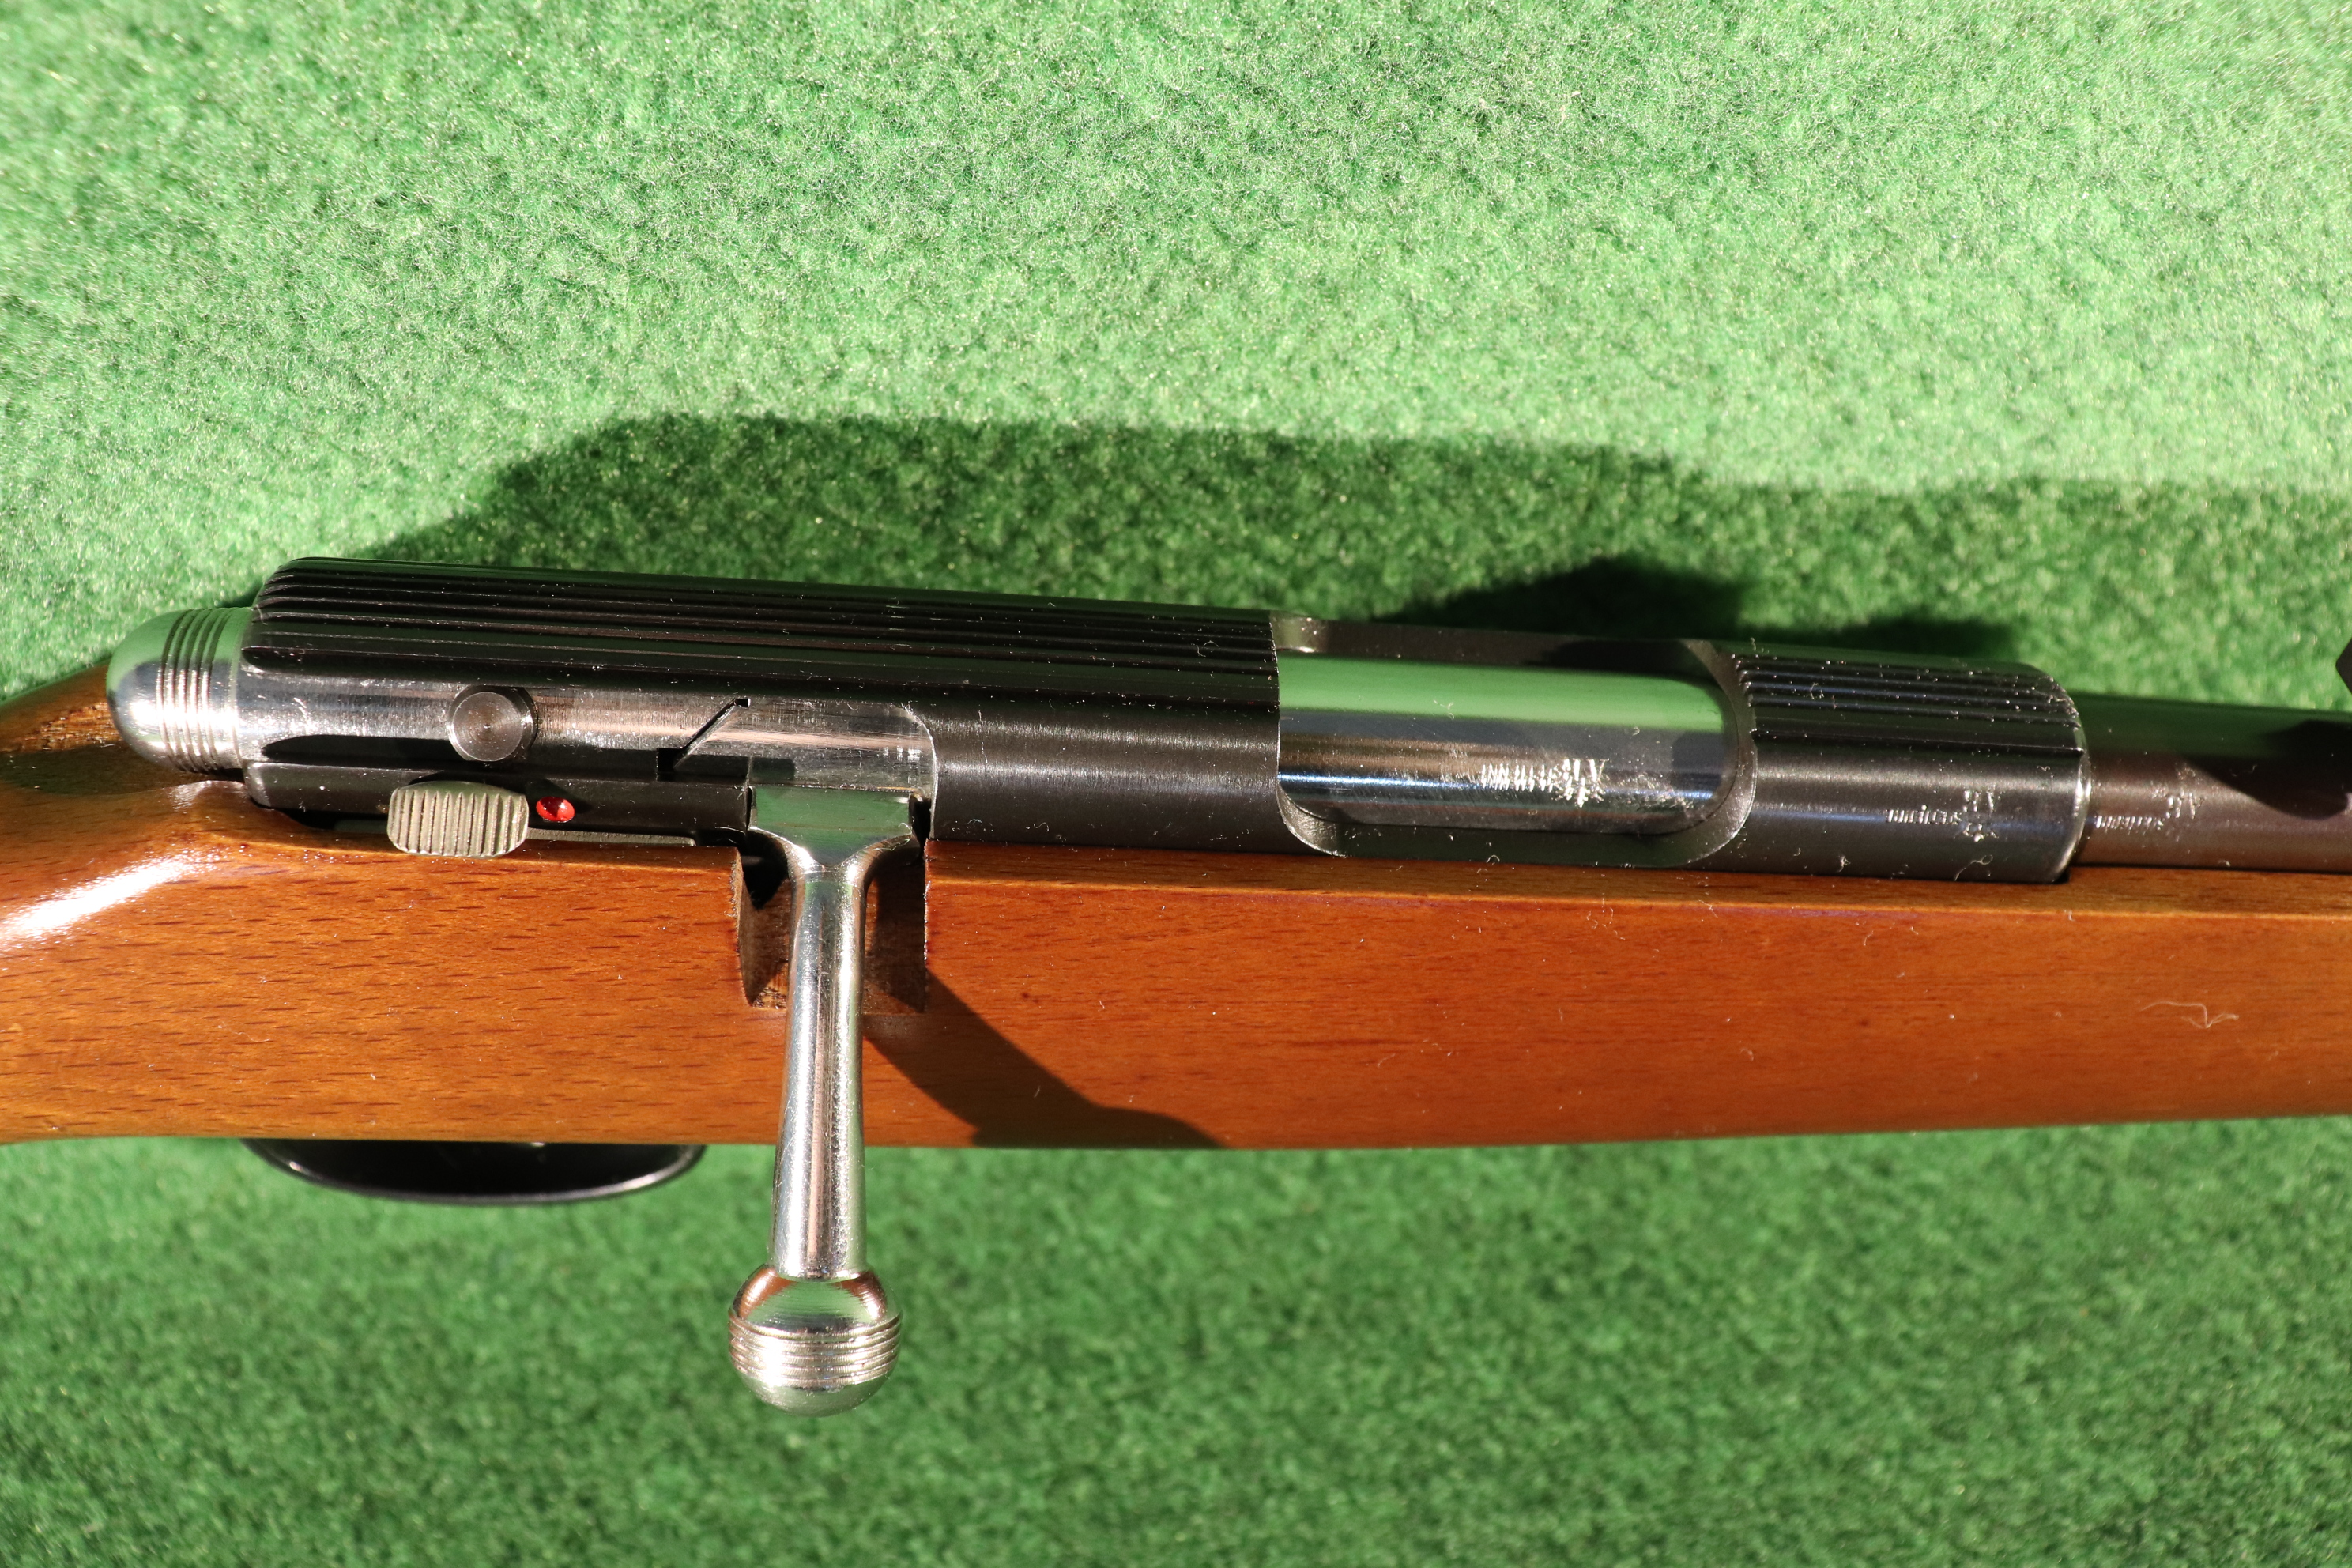 Carabine Gaucher Cal.22LR Fileté